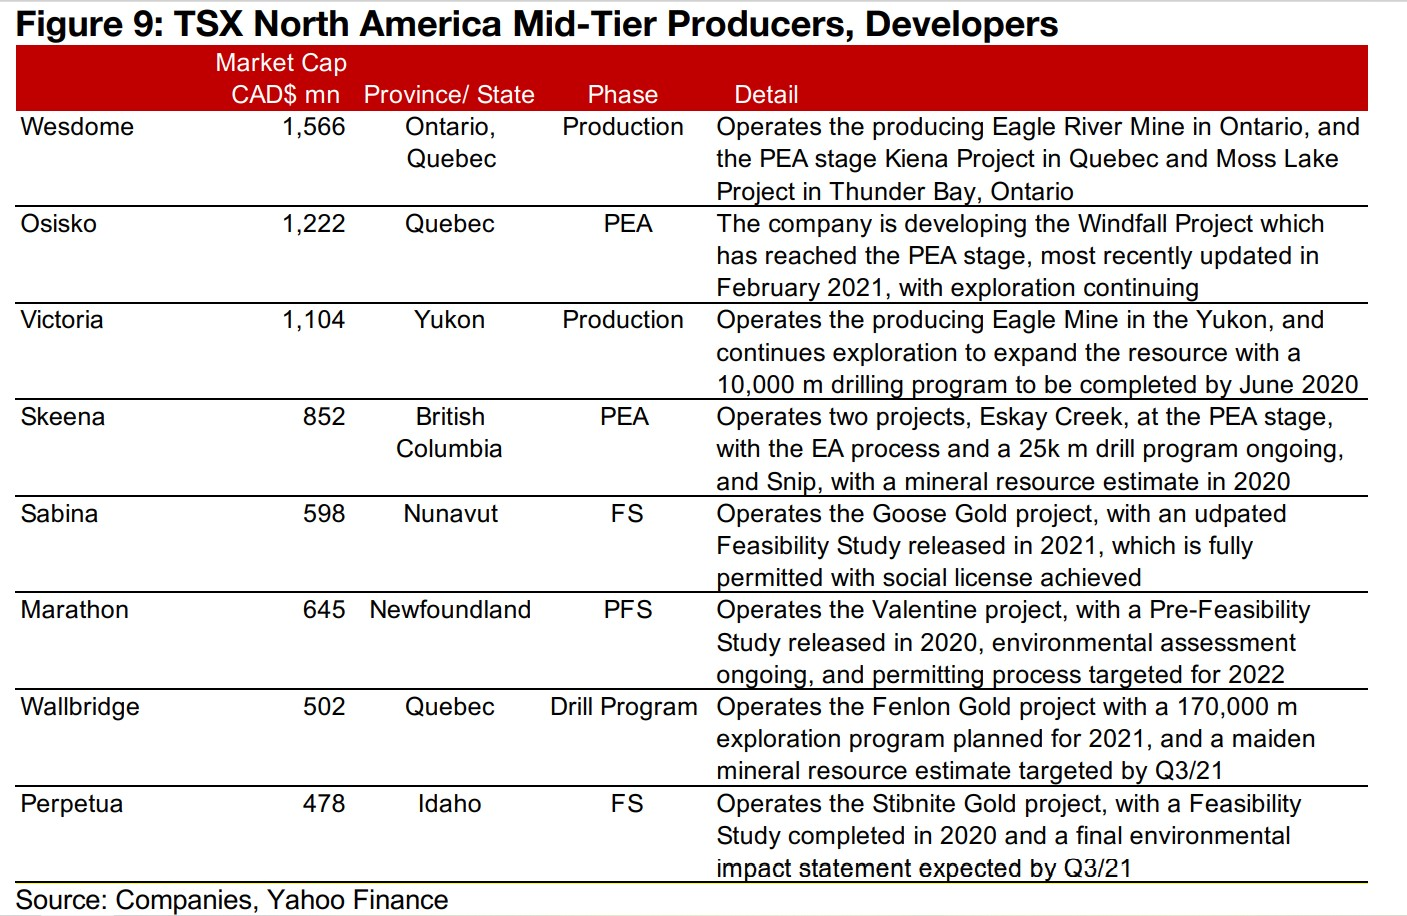 2) TSX North American Producers, Developers